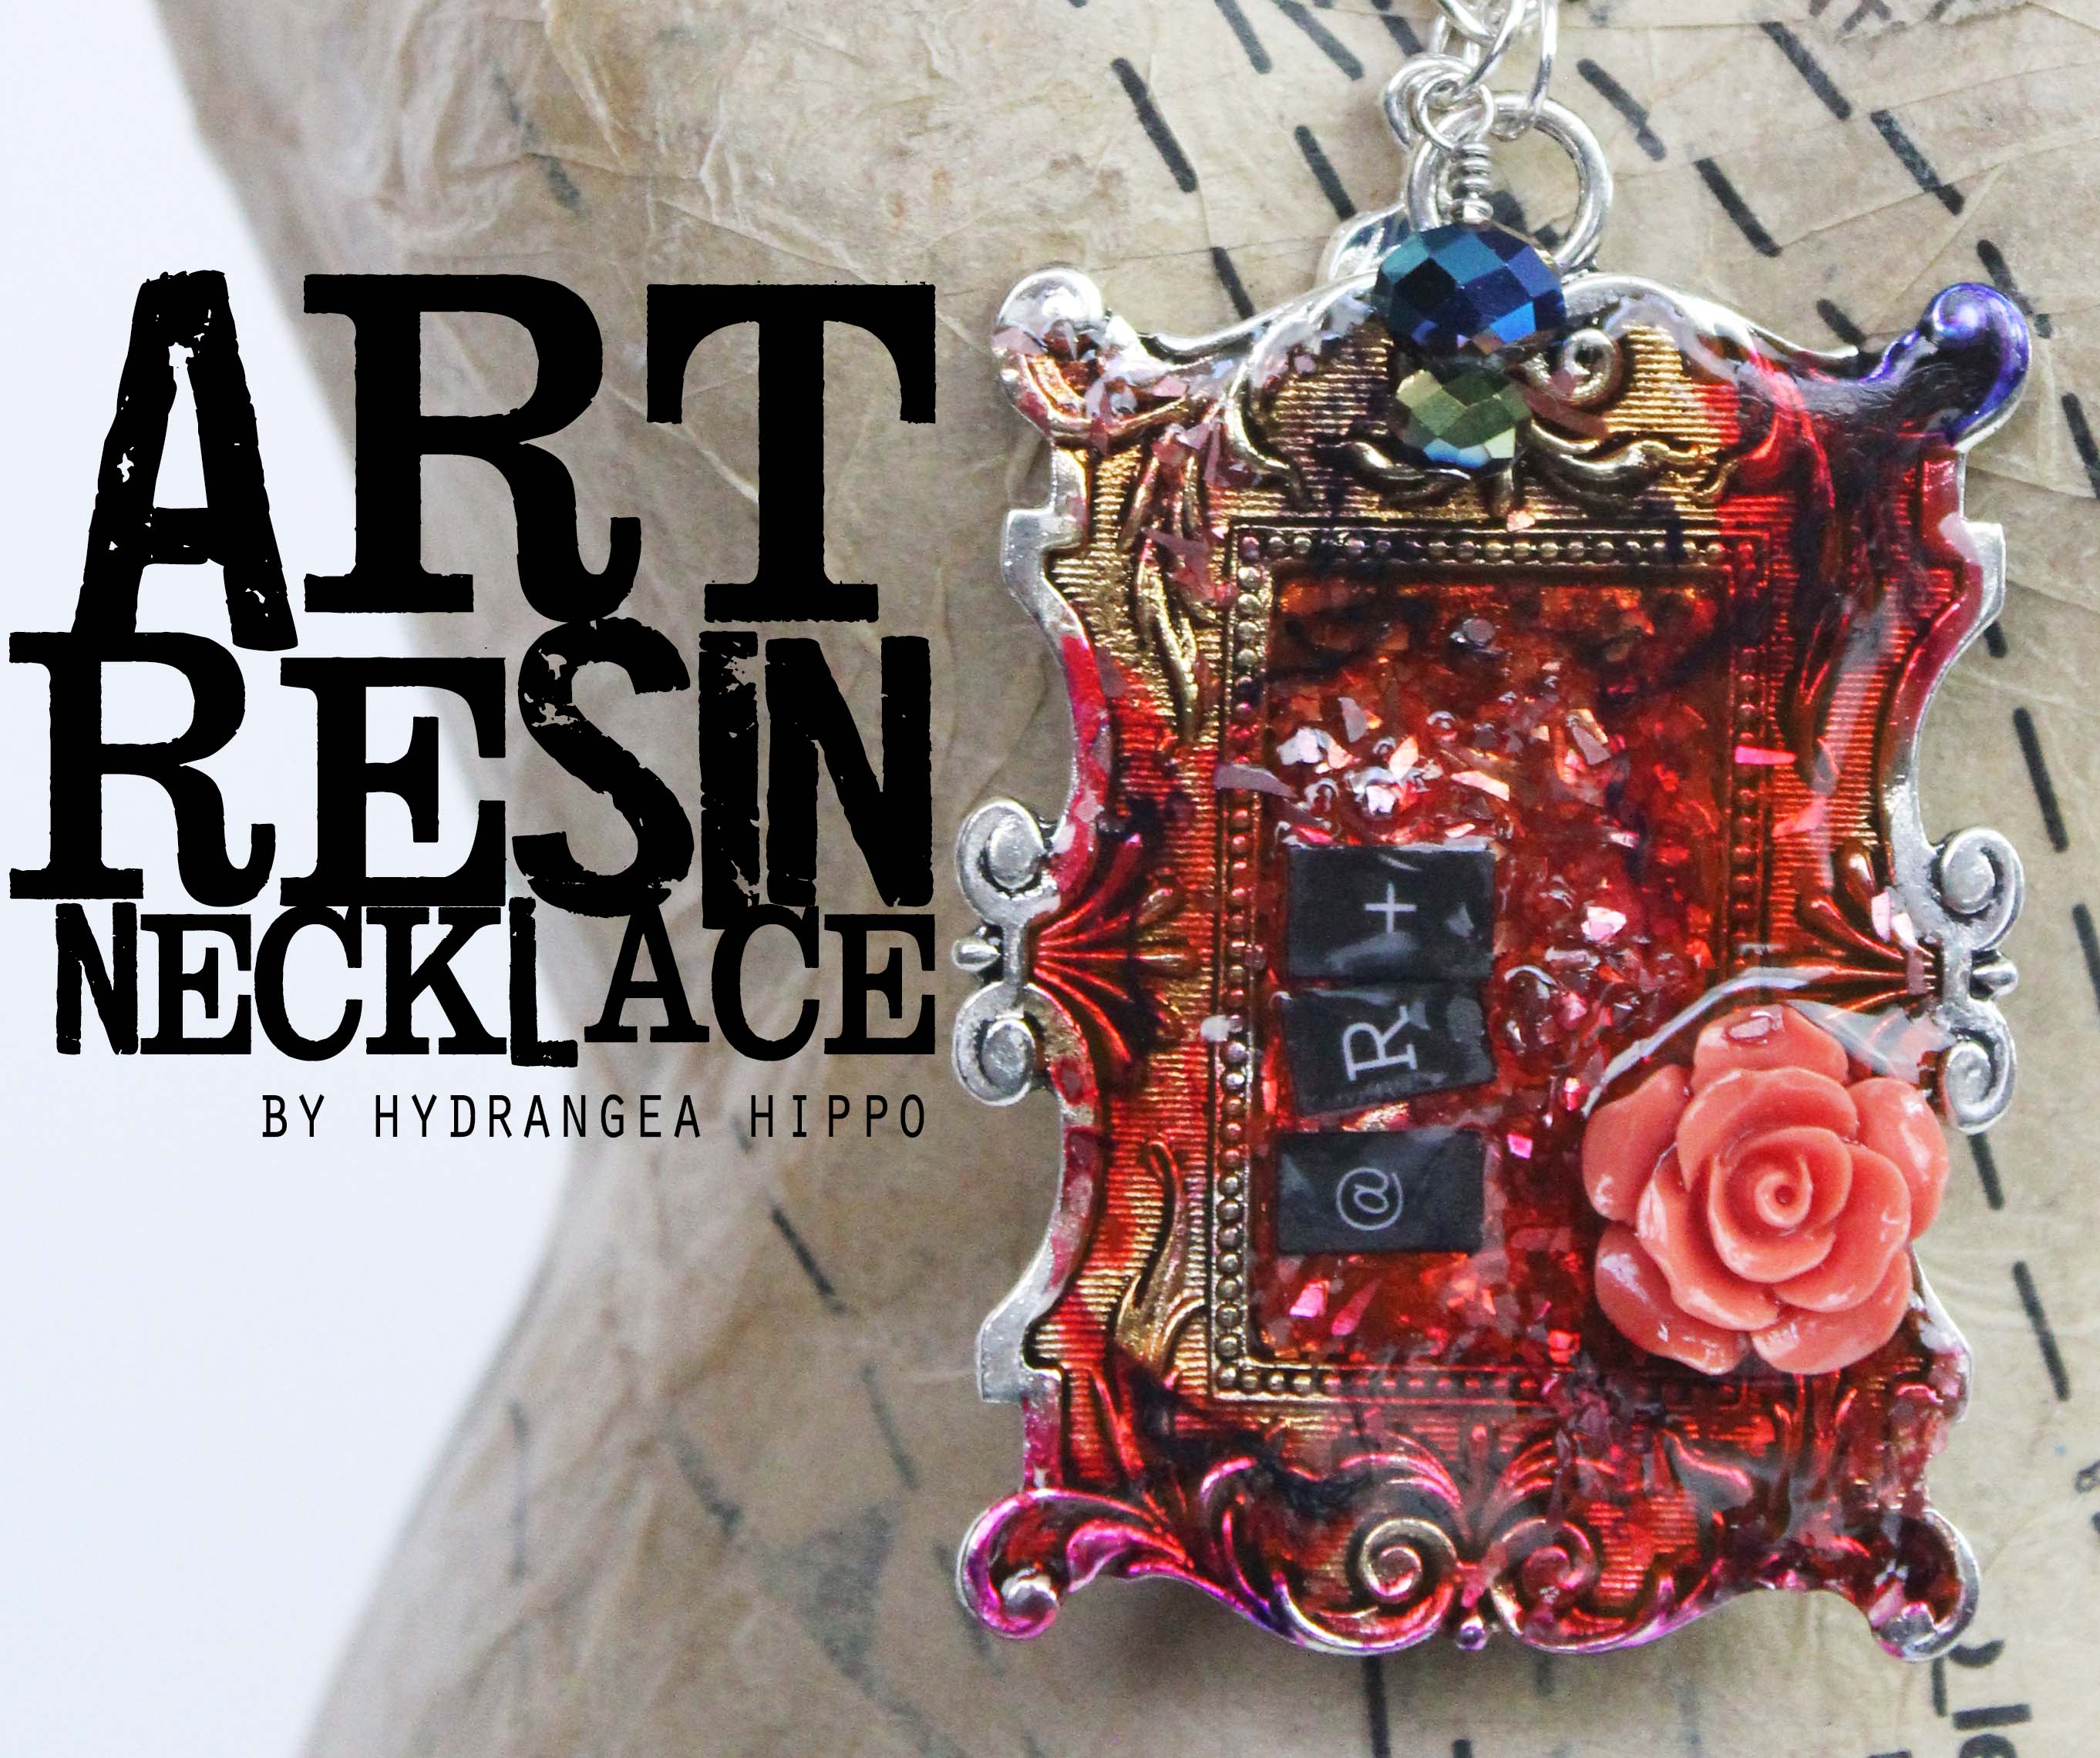 Resin archives hydrangea hippo by jennifer priest how to add color to resin an artsy necklace tutorial aloadofball Gallery